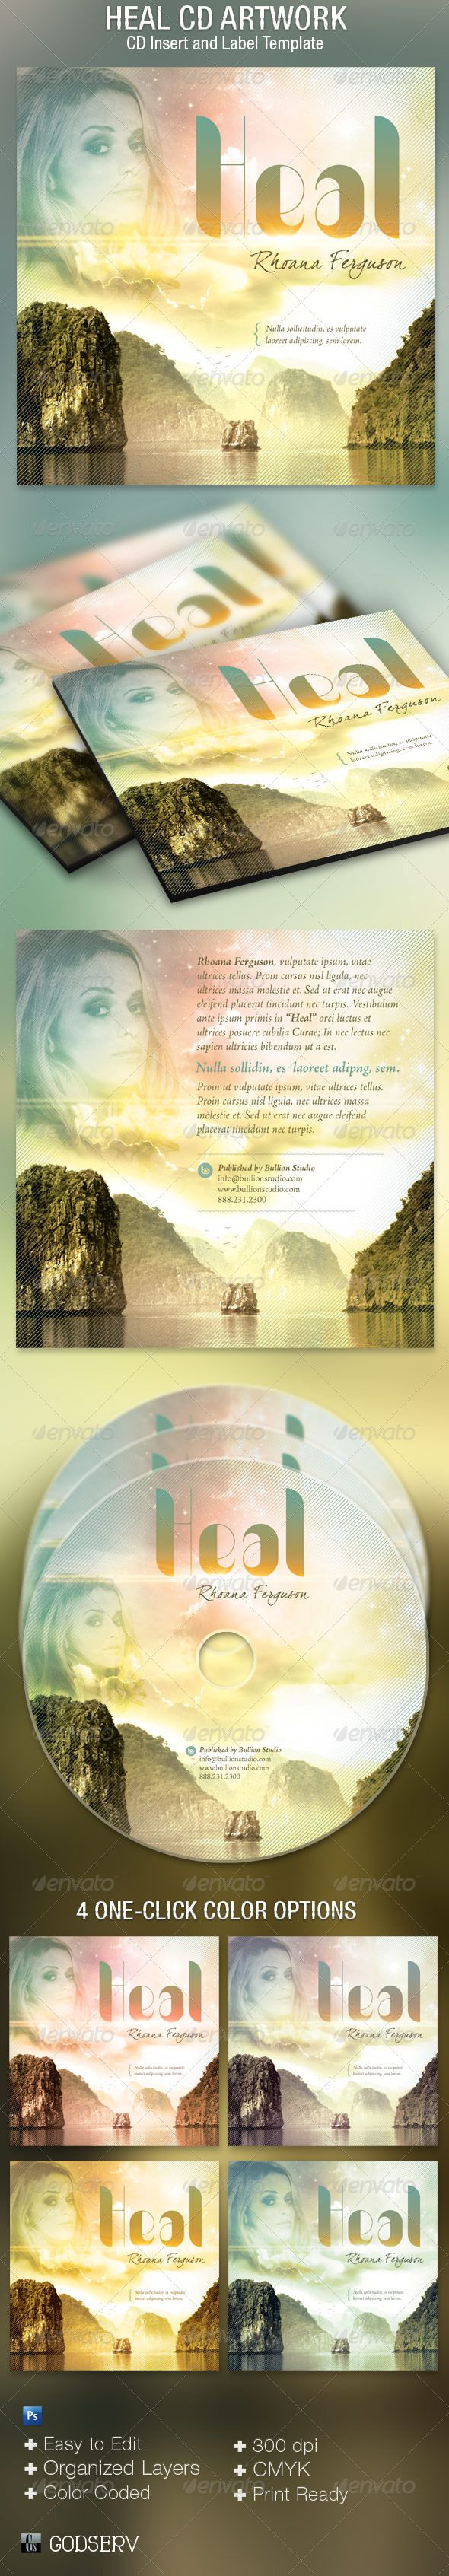 Heal CD Artwork Template — Photoshop PSD #contemporary #label • Available here → https://graphicriver.net/item/heal-cd-artwork-template/5034454?ref=pxcr